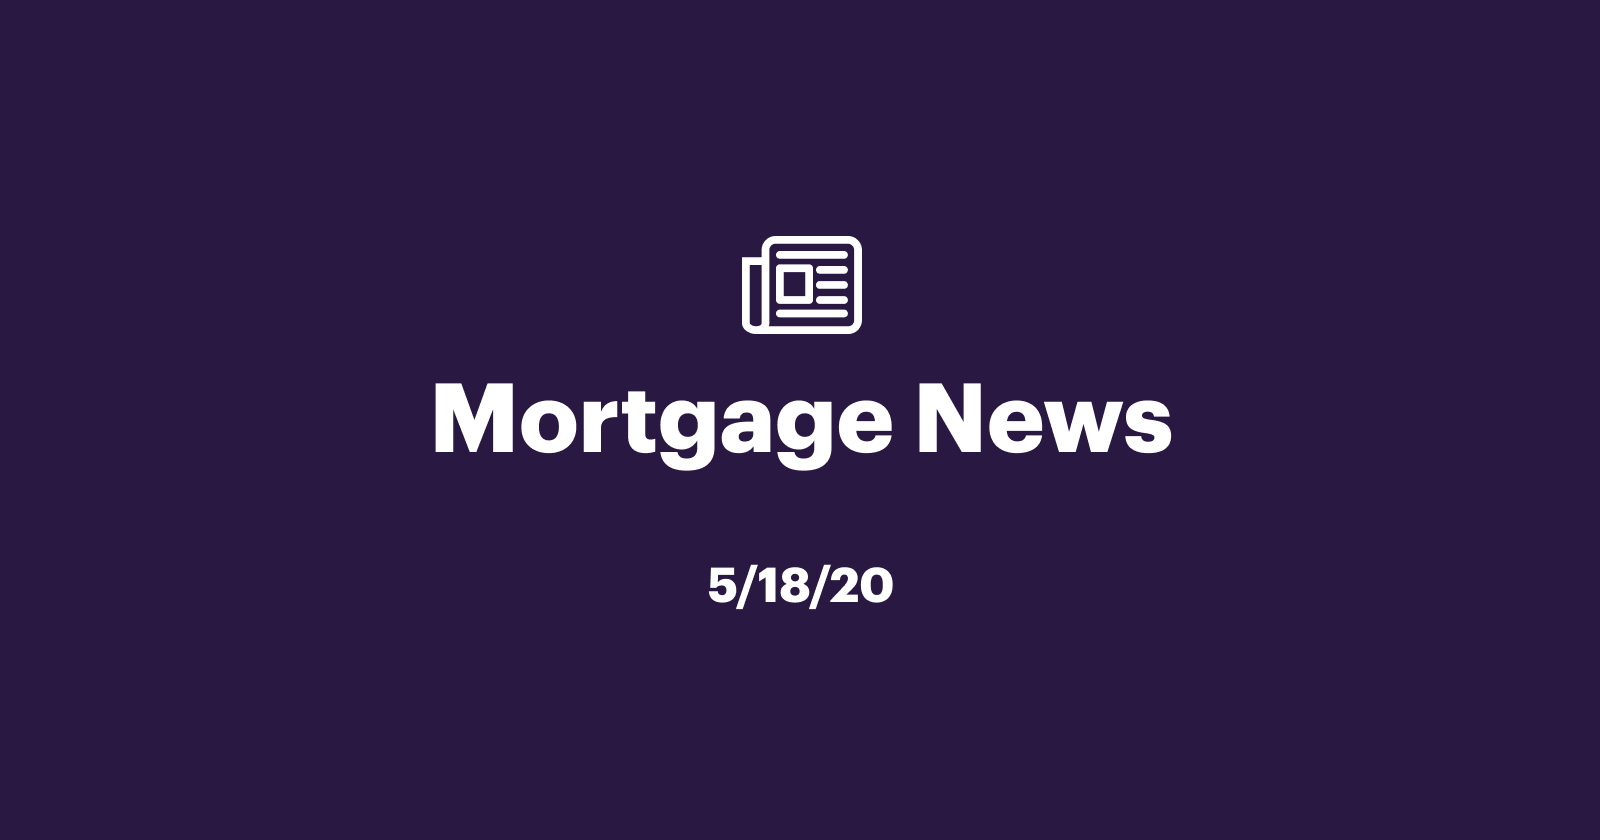 mortgage news 5/18